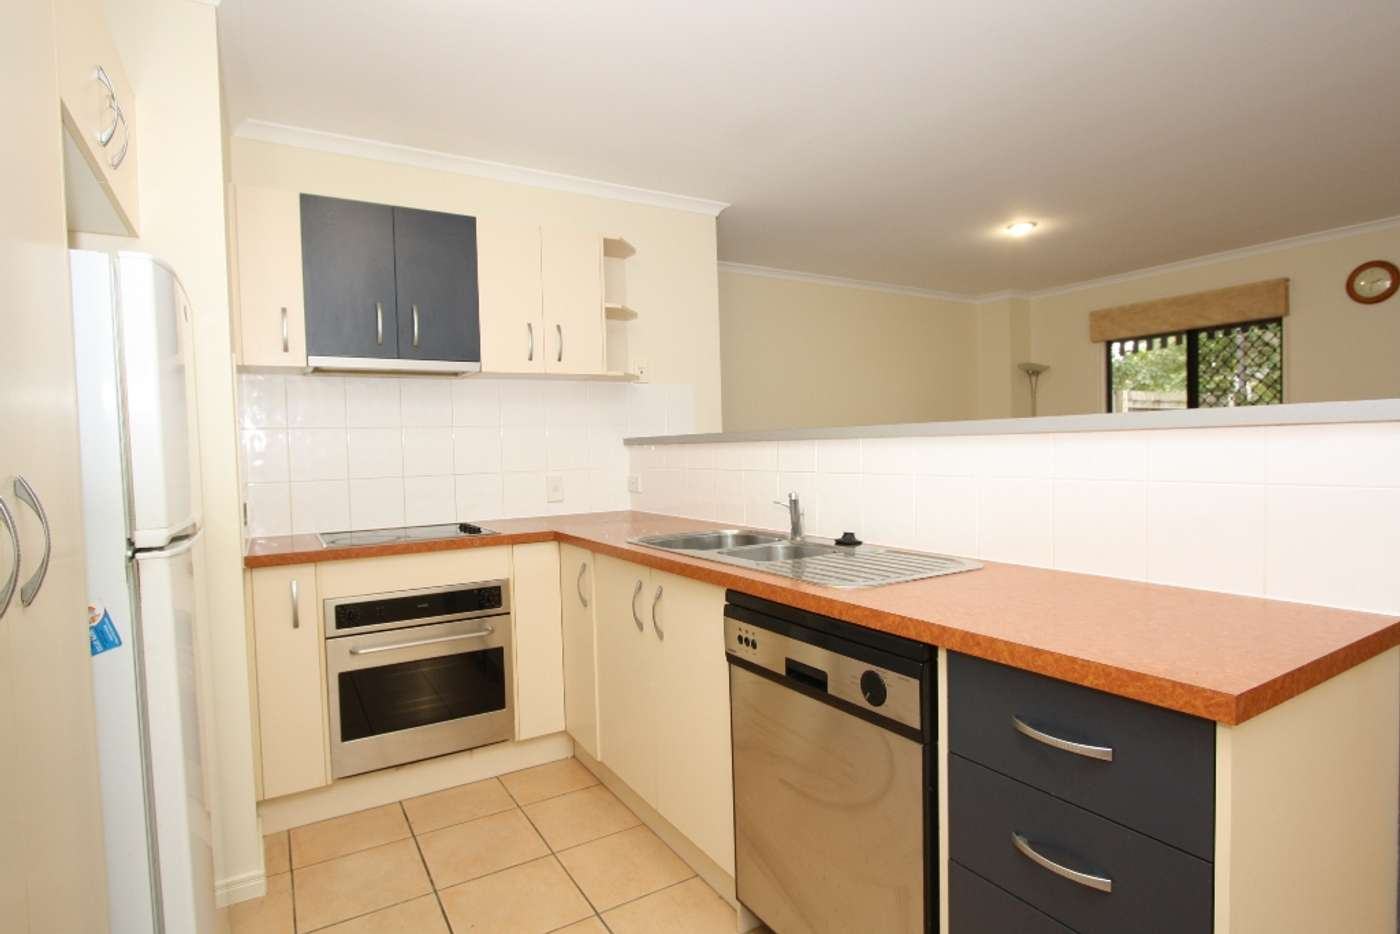 Seventh view of Homely townhouse listing, 27 Aberleigh Road, Herston QLD 4006